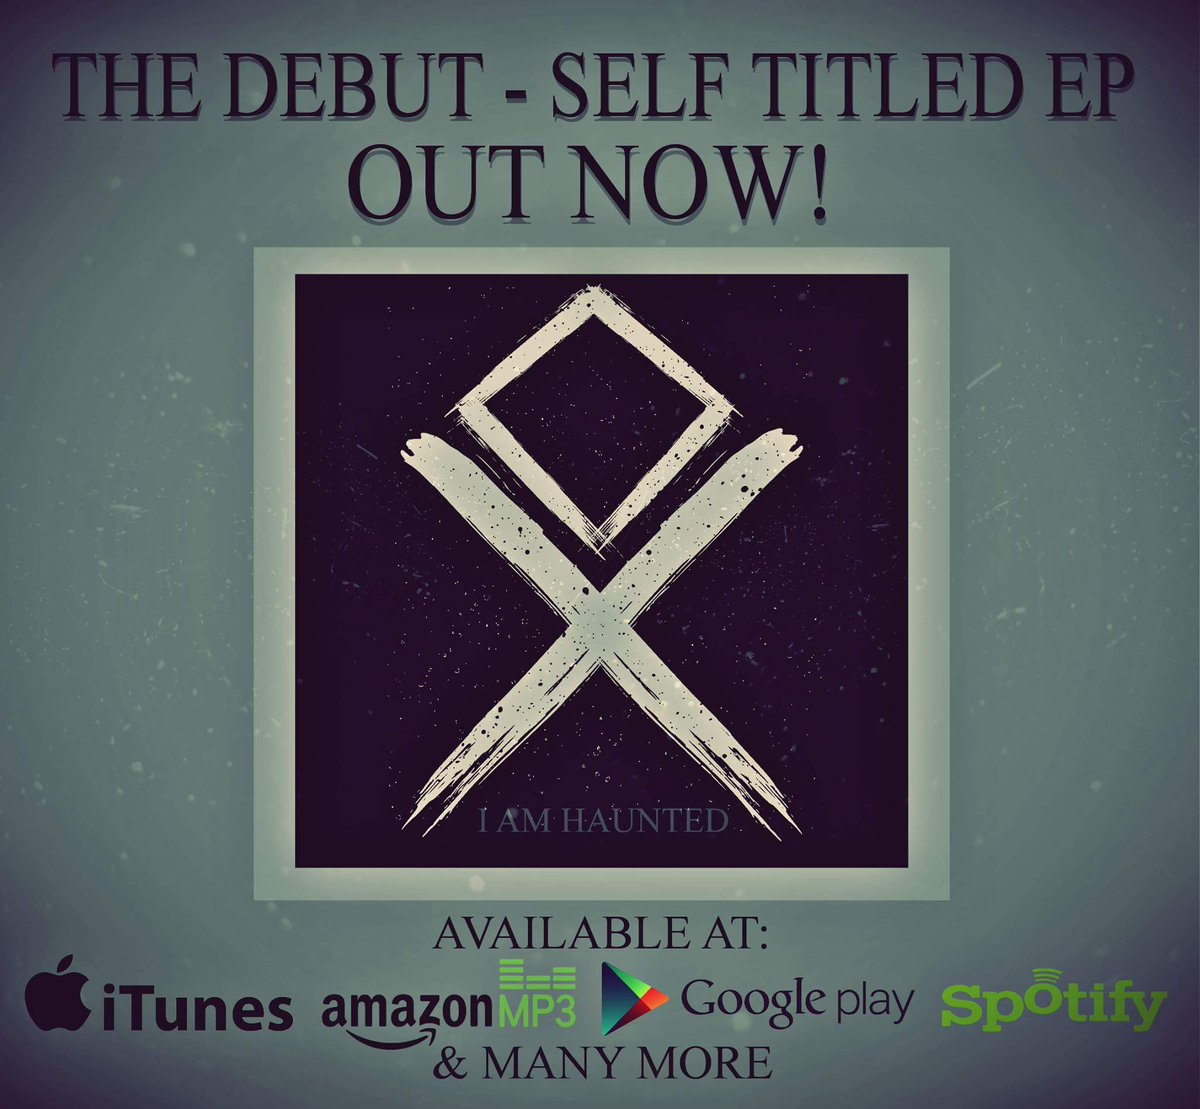 Our EP is out now! Go pick it up, and RT! https://t.co/ommtsTUEAs